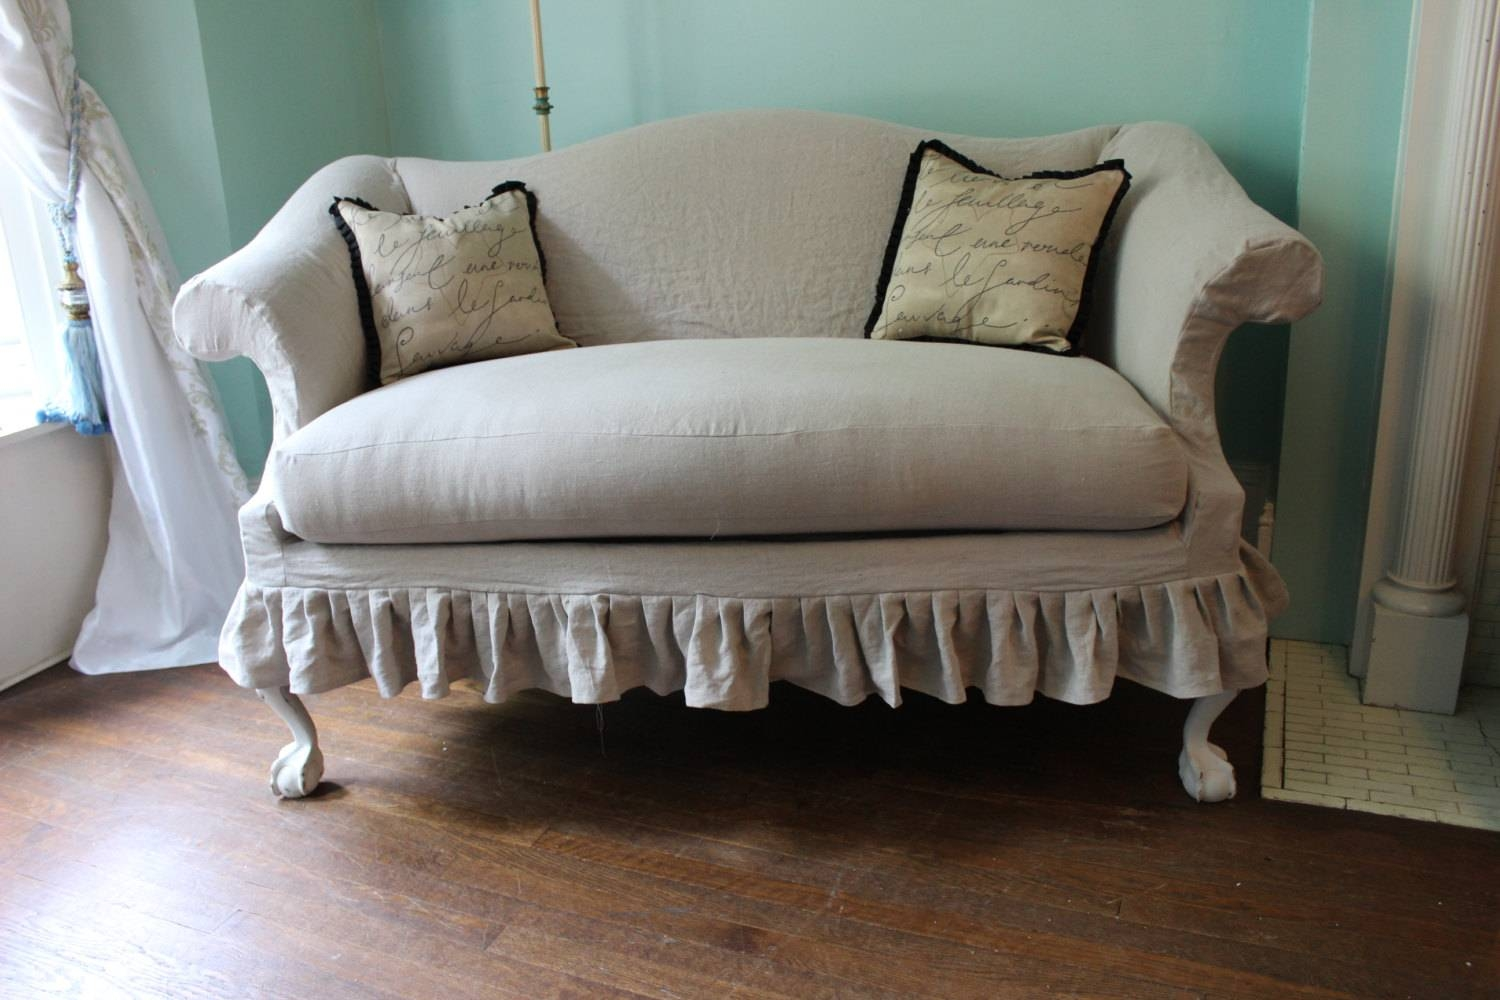 Old Reclining Loveseat Slipcover With White Color 2 Cushions And inside Camel Back Couch Slipcovers (Image 15 of 15)